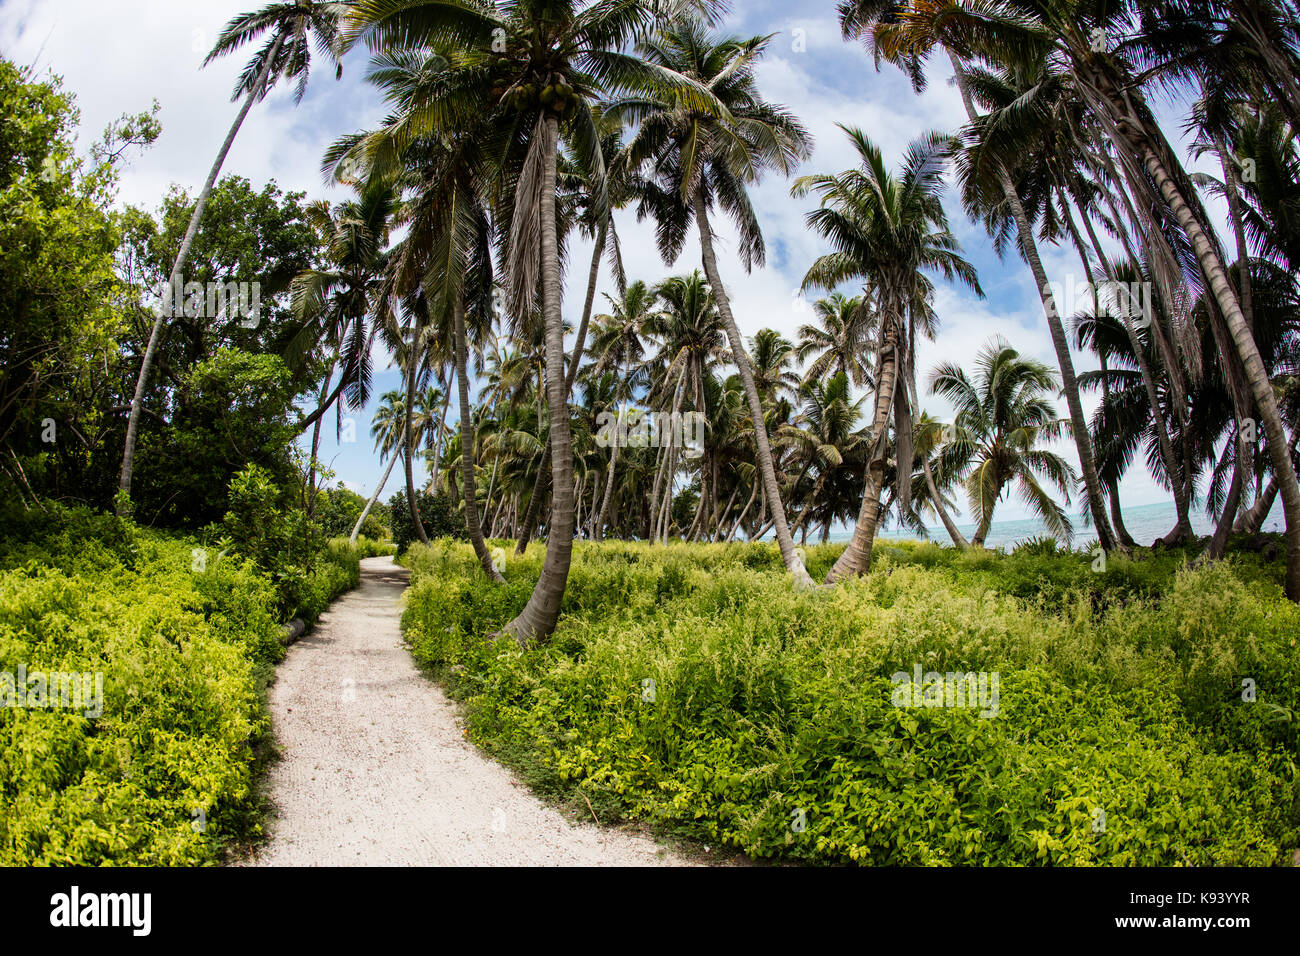 A sandy path leads through a forest of palm trees on Half Moon Caye, a remote island in Lighthouse Reef Atoll in - Stock Image